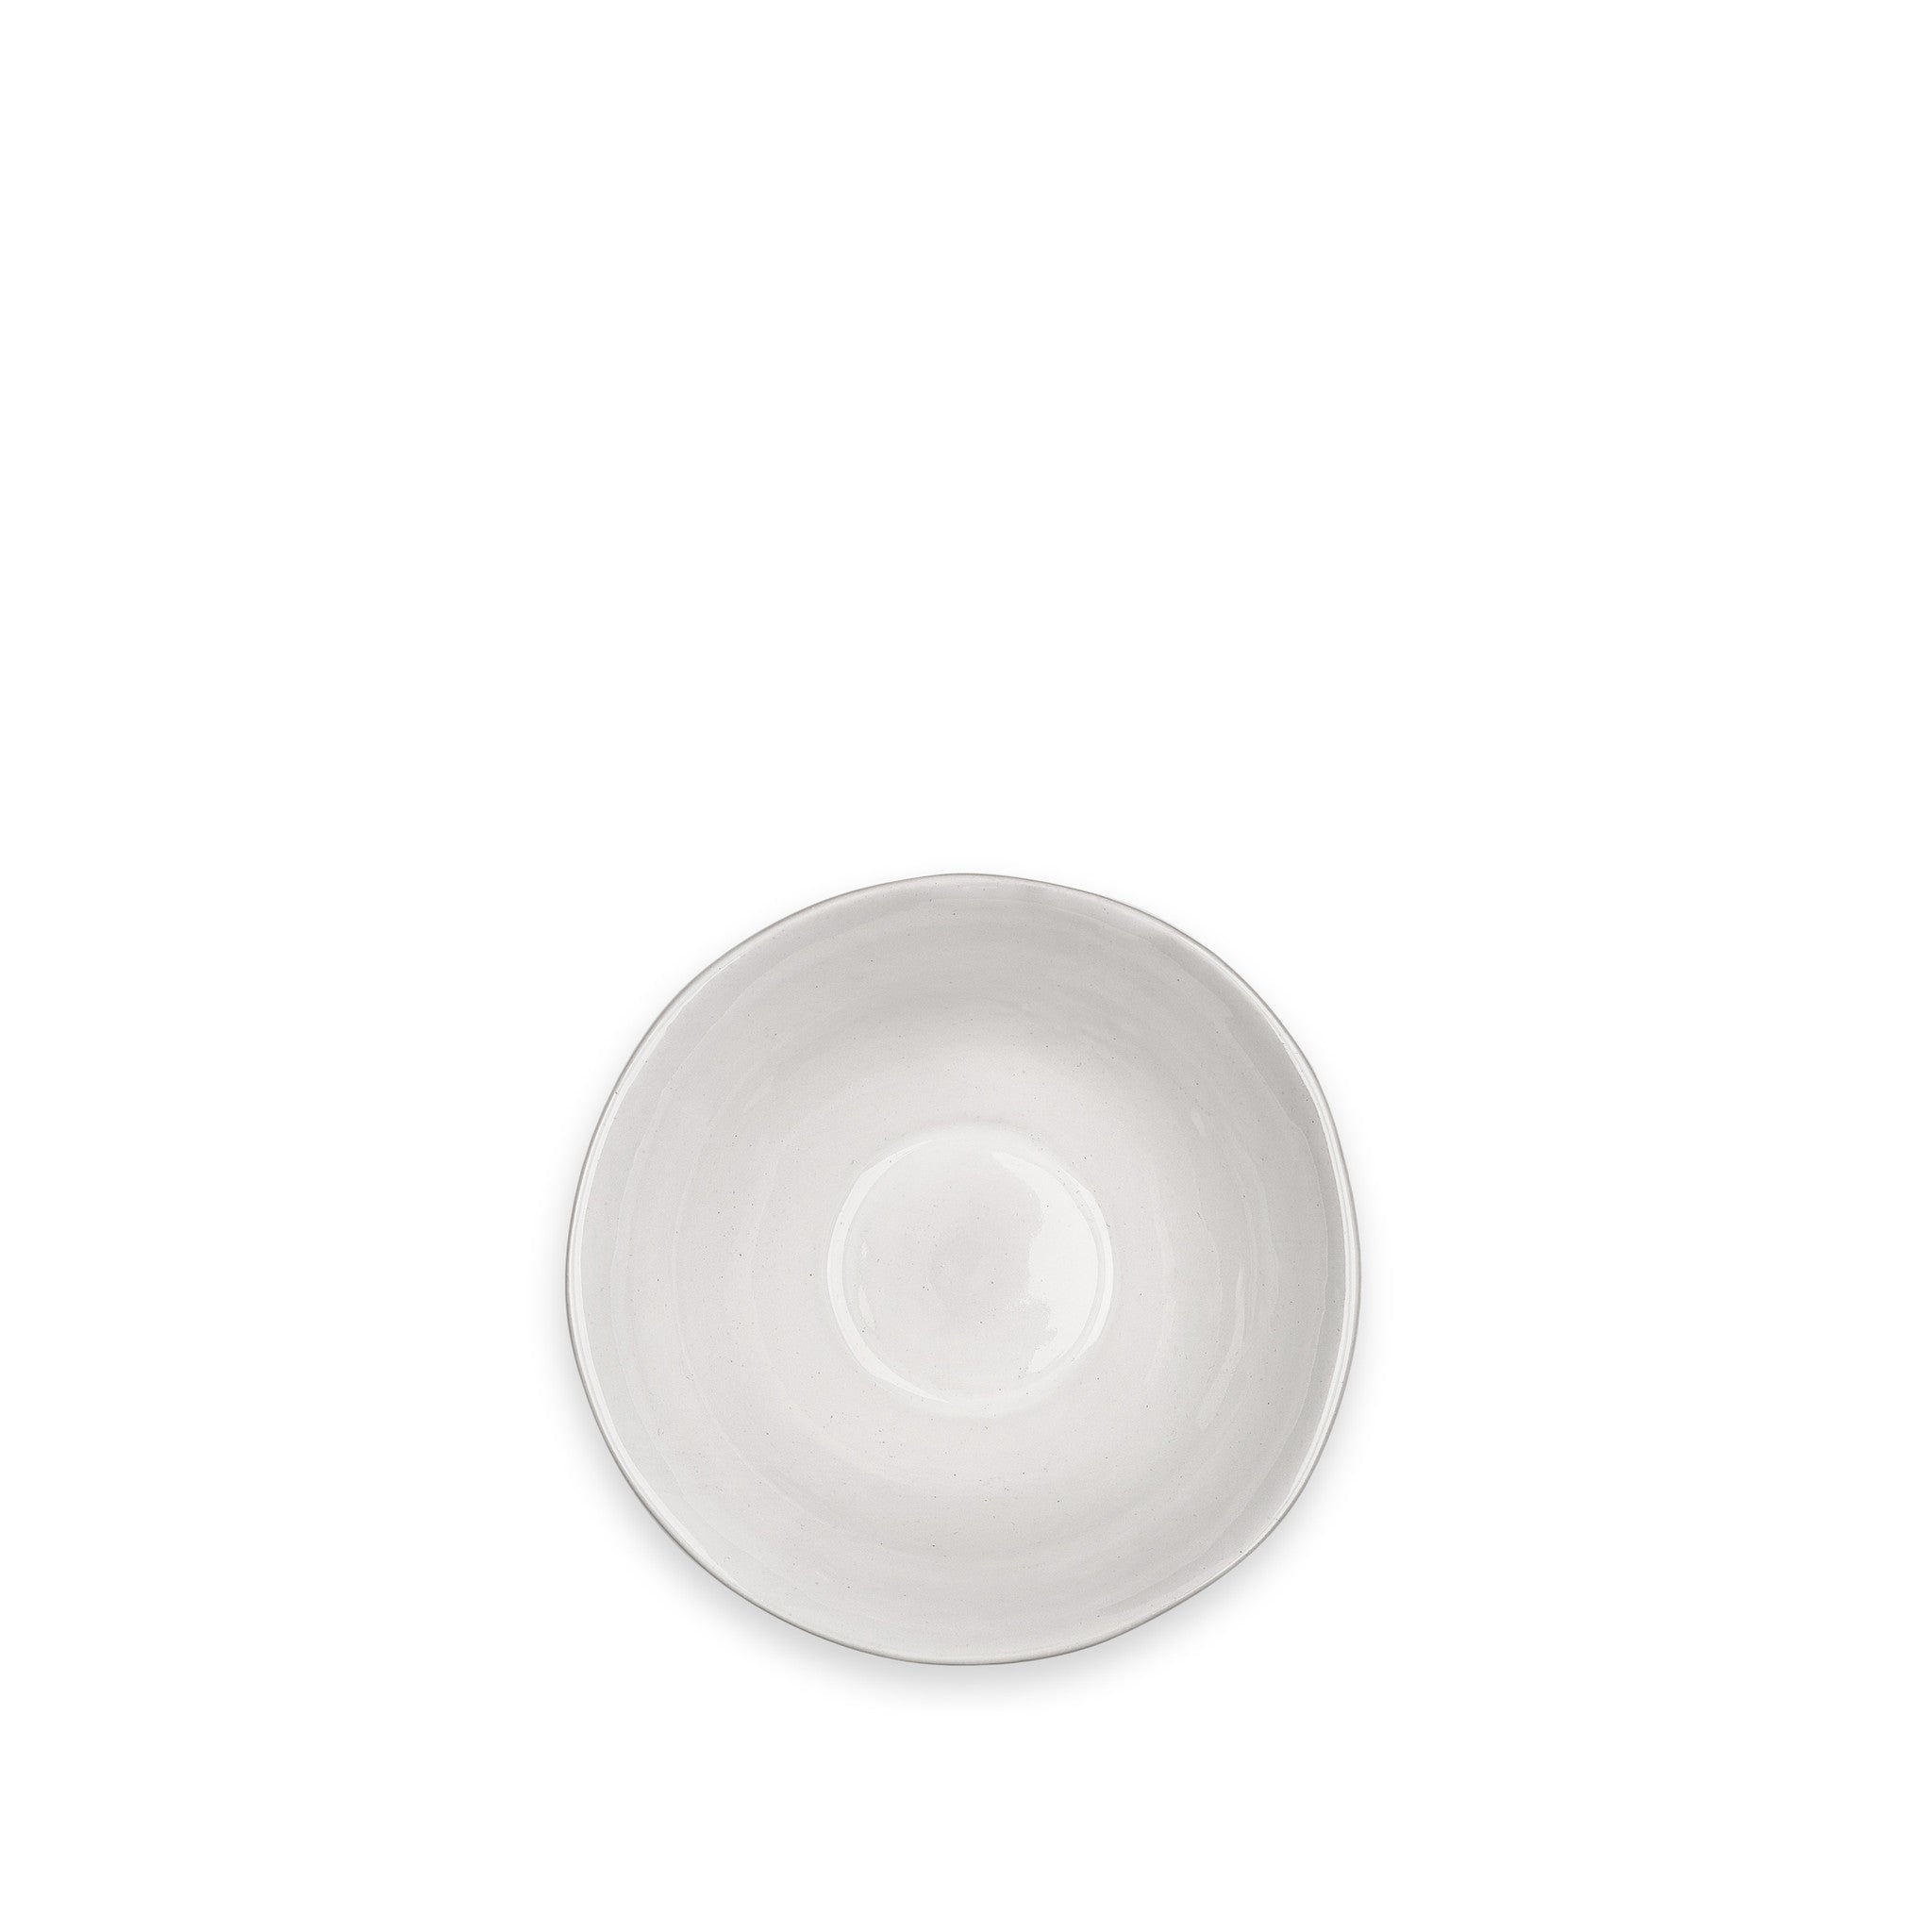 Wonki Ware Soup Bowl in White, 18cm